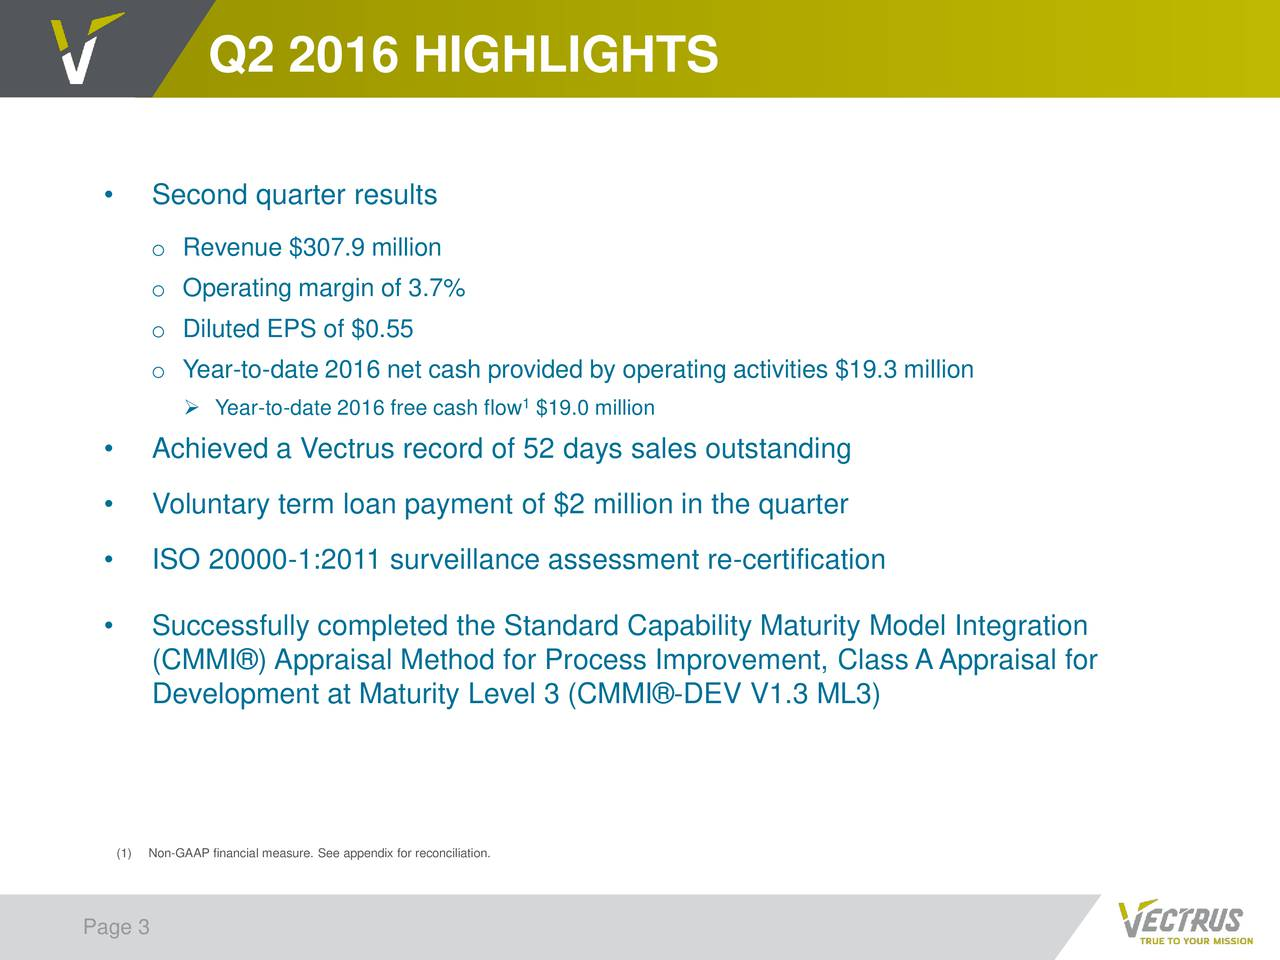 Second quarter results o Revenue $307.9 million o Operating margin of 3.7% o Diluted EPS of $0.55 o Year-to-date 2016 net cash provided by operating activities $19.3 million Year-to-date 2016 free cash flow $19.0 million Achieved a Vectrus record of 52 days sales outstanding Voluntary term loan payment of $2 million in the quarter ISO 20000-1:2011 surveillance assessment re-certification Successfully completed the Standard Capability Maturity Model Integration (CMMI) Appraisal Method for Process Improvement, Class AAppraisal for Development at Maturity Level 3 (CMMI-DEV V1.3 ML3) (1)Non-GAAP financial measure. See appendix for reconciliation. Page 3